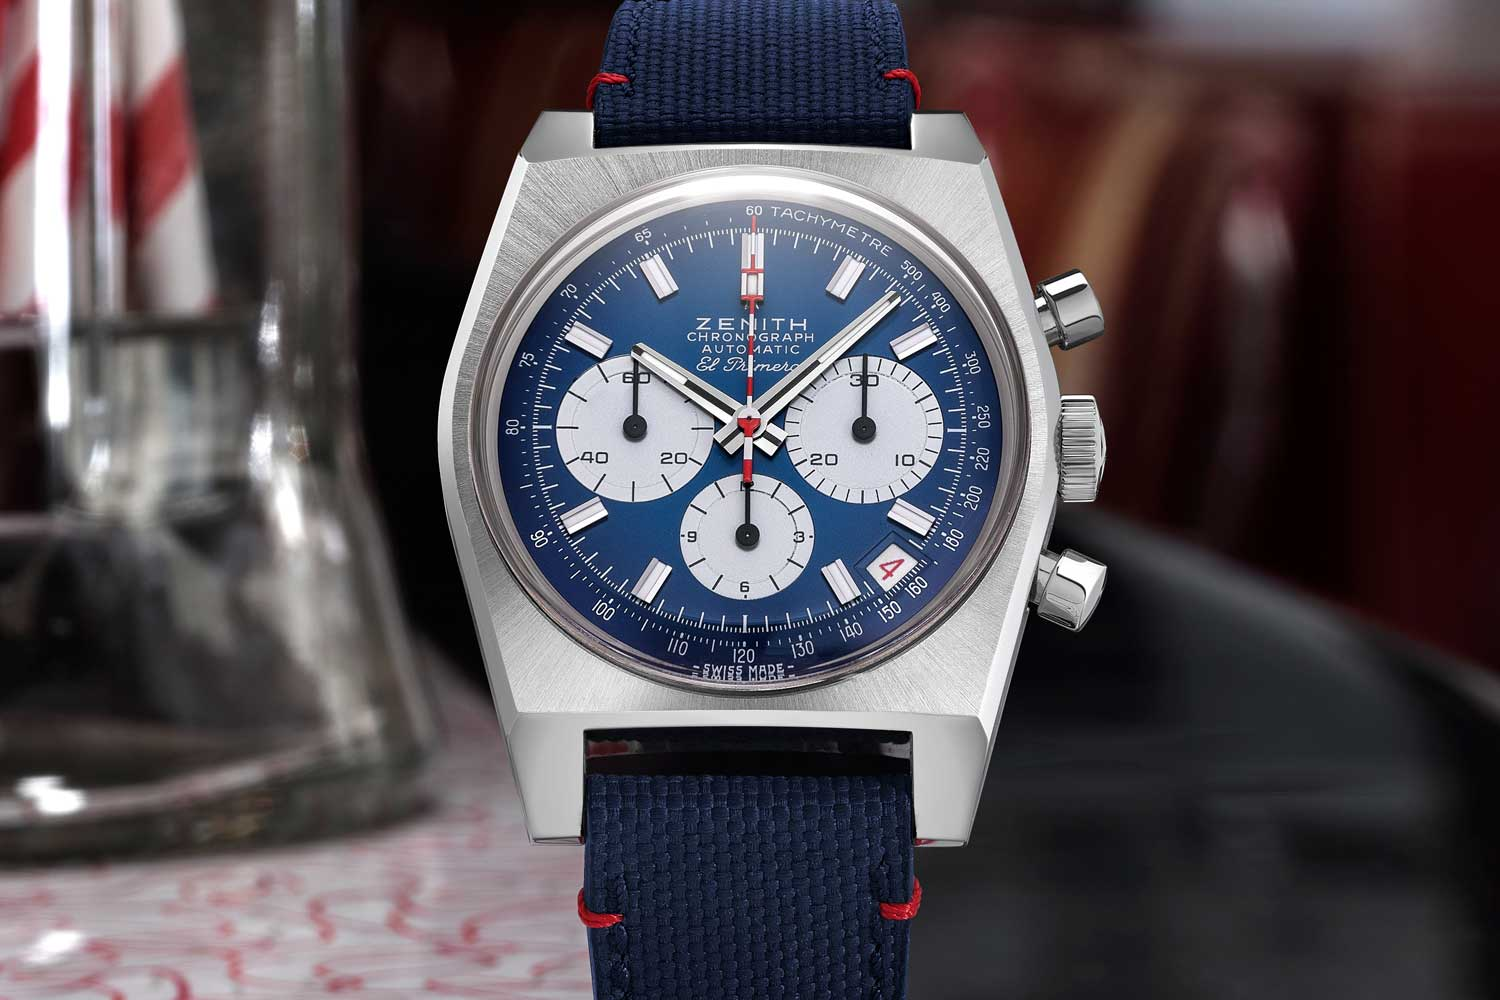 Smartly referencing design codes of the 60s, Zenith recreates an iconic chronograph perfect for today.